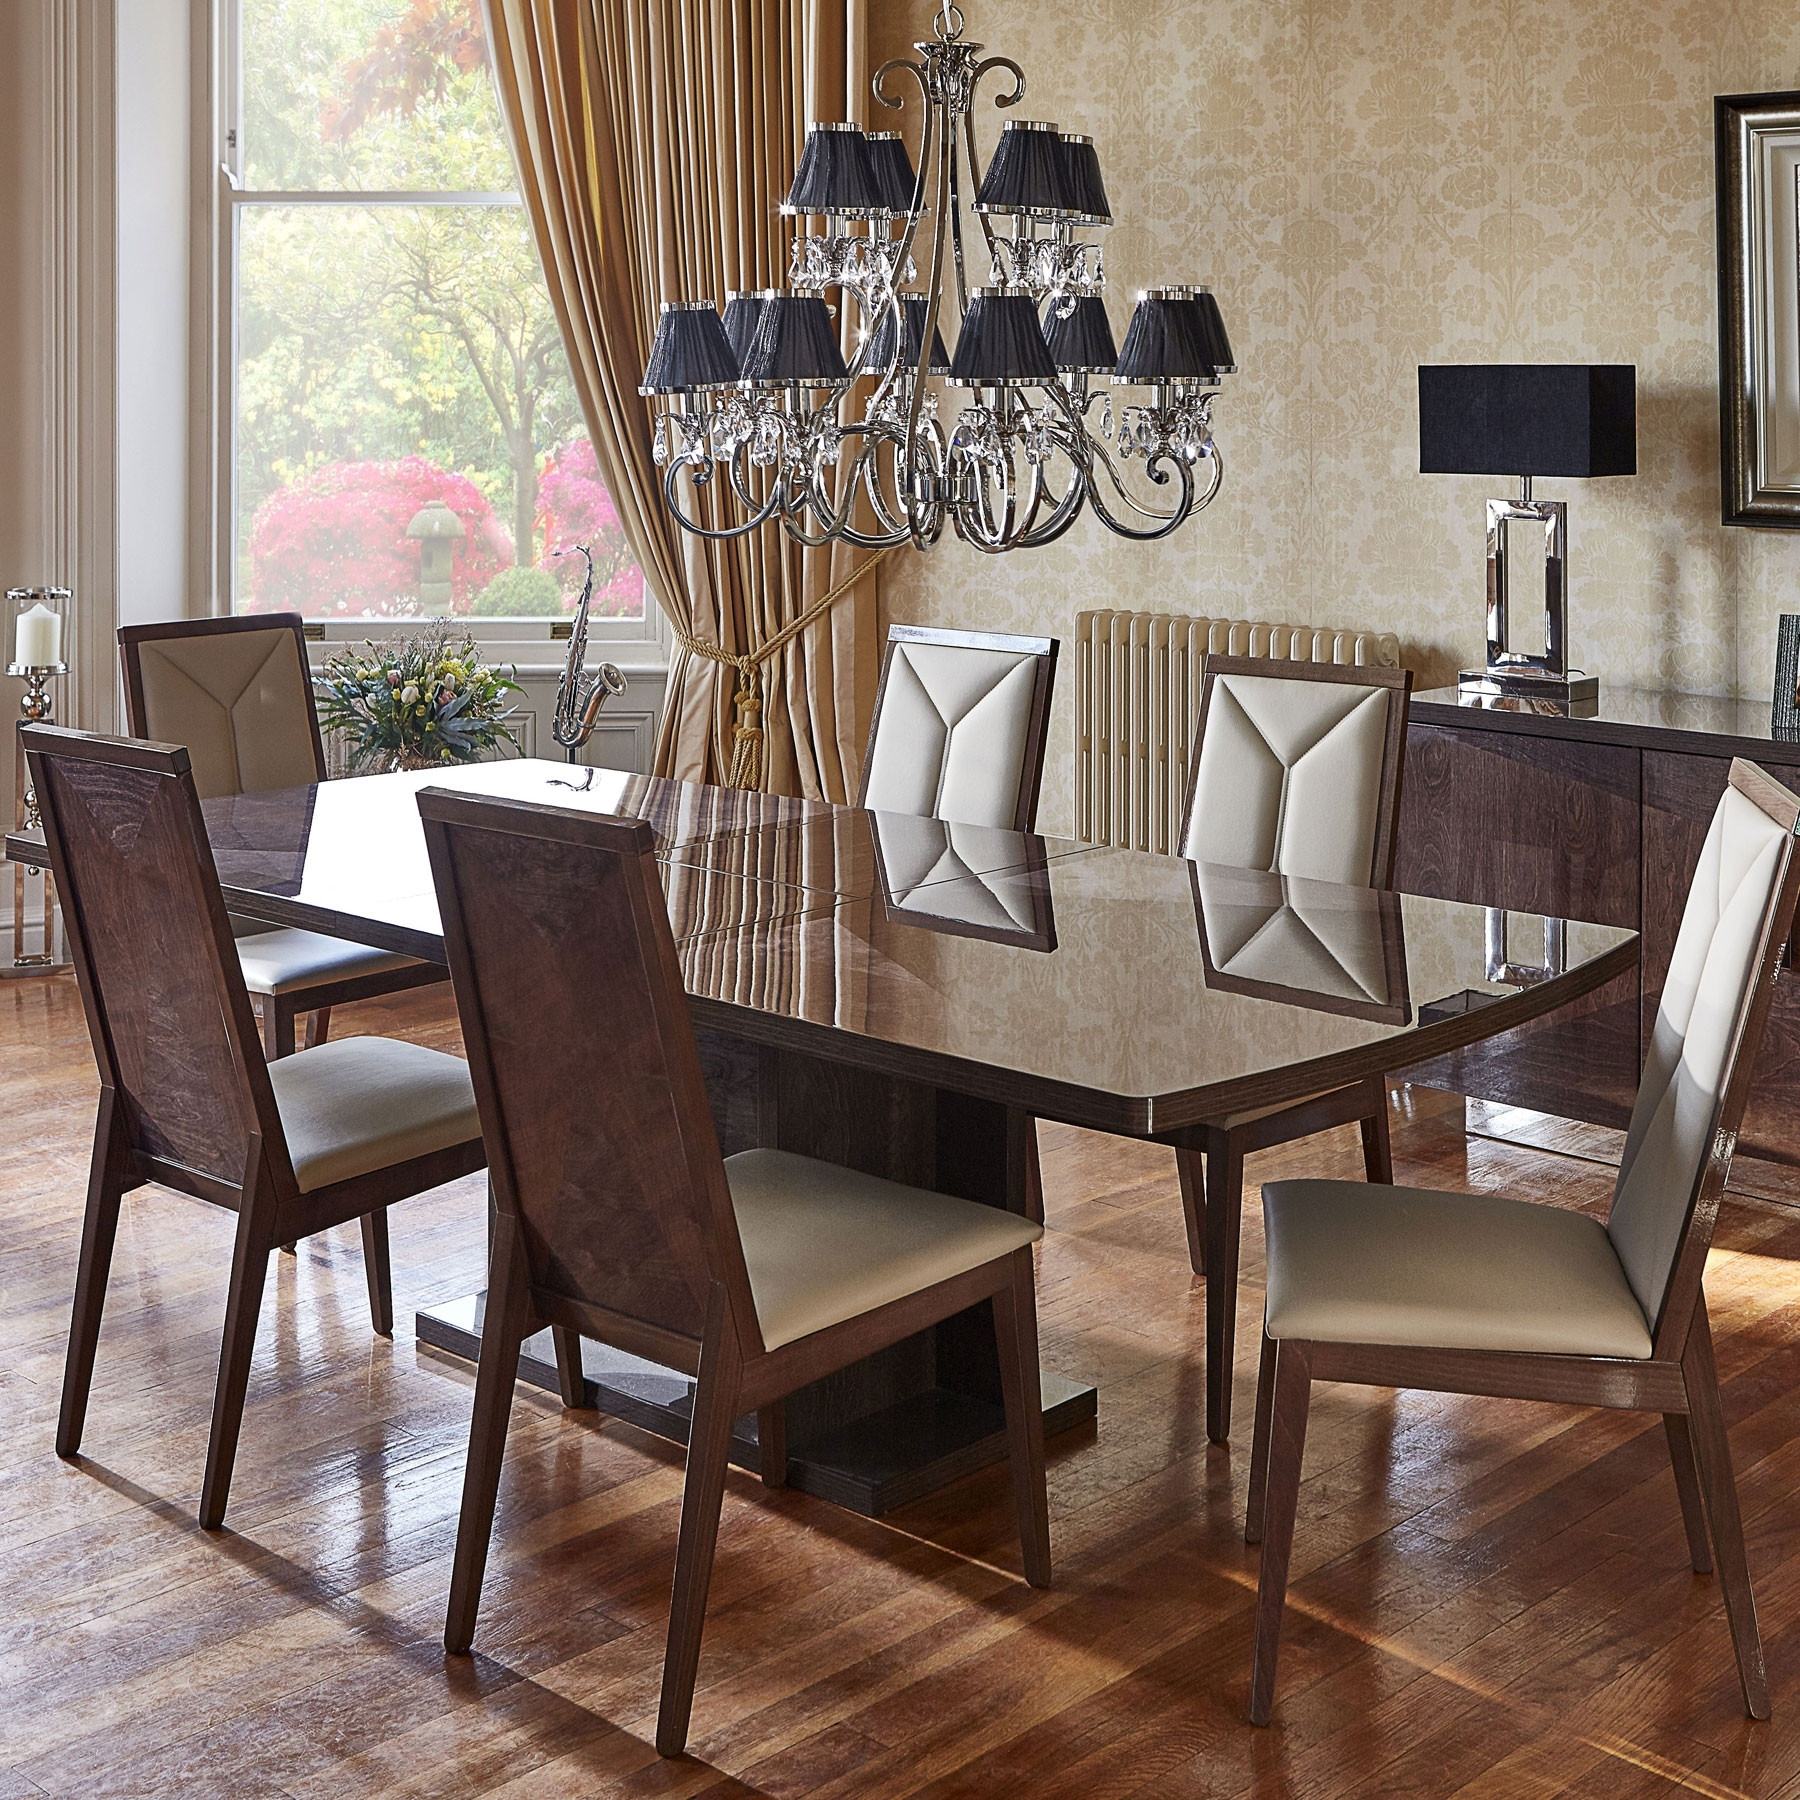 Vogue High Gloss Extending Dining Table & 6 Chairs With Regard To Most Popular High Gloss Extending Dining Tables (View 24 of 25)